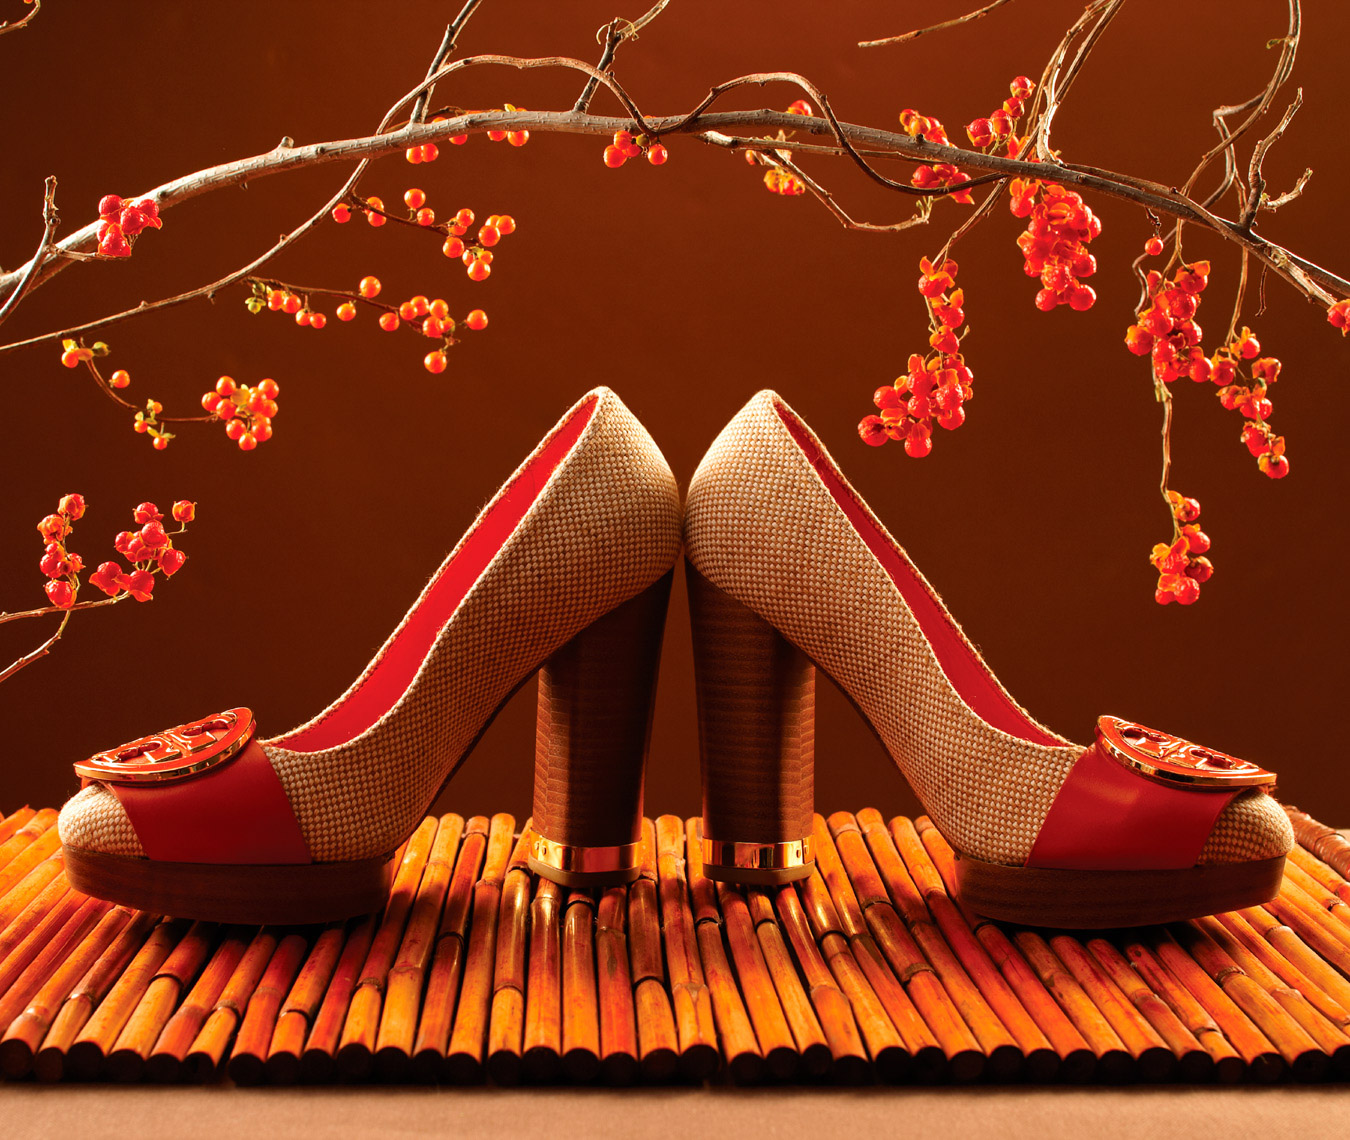 red and tan heels on wooden surface with holly branch above